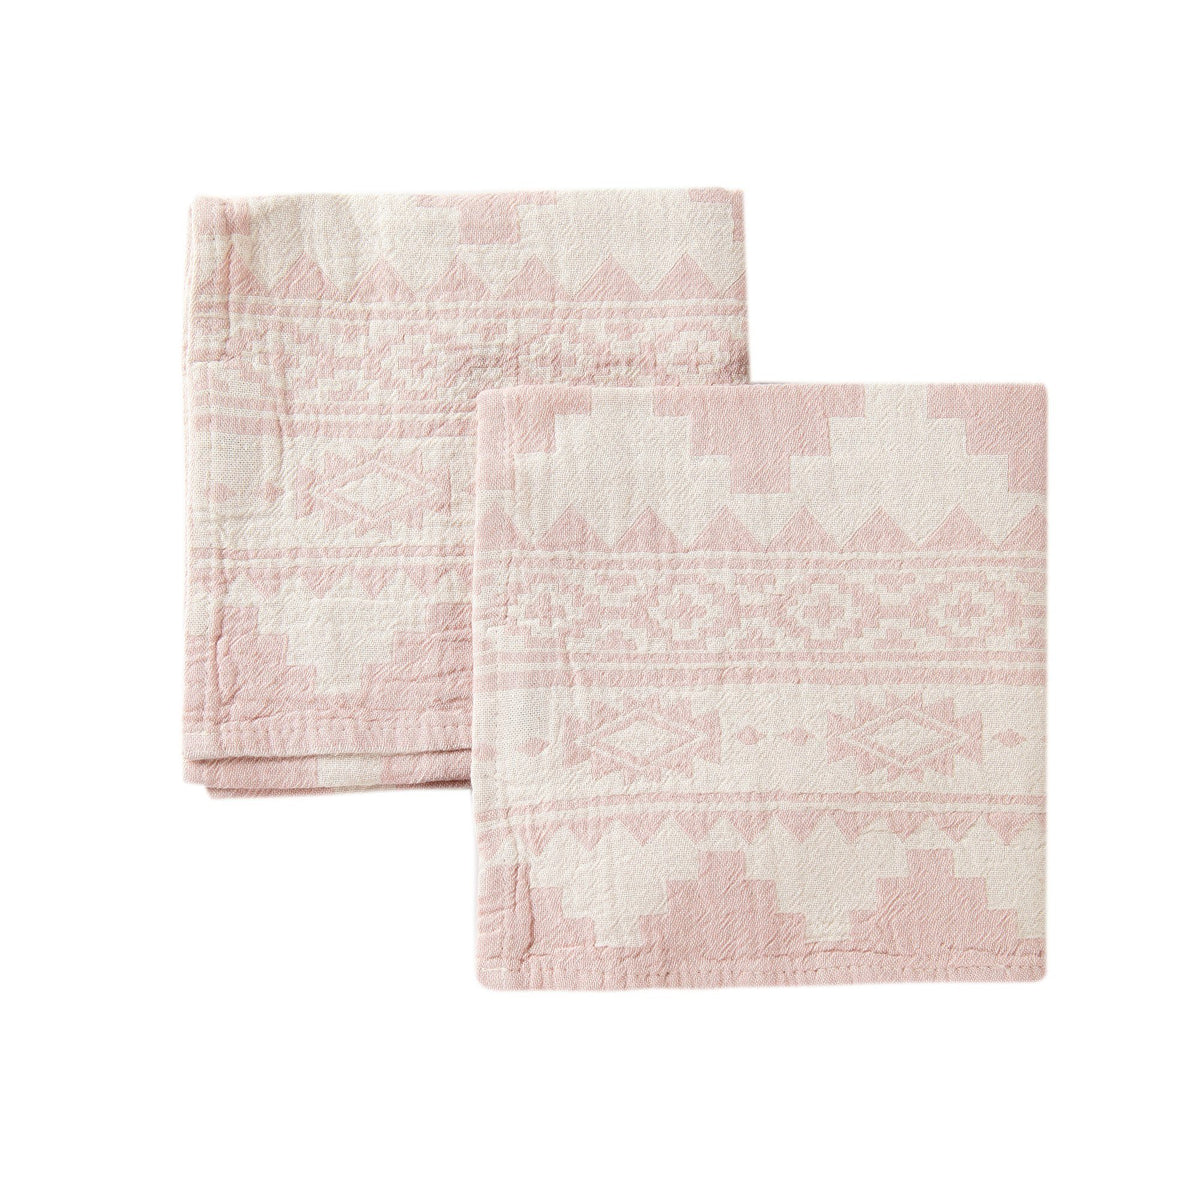 Zuma Tea Towel Set of 2